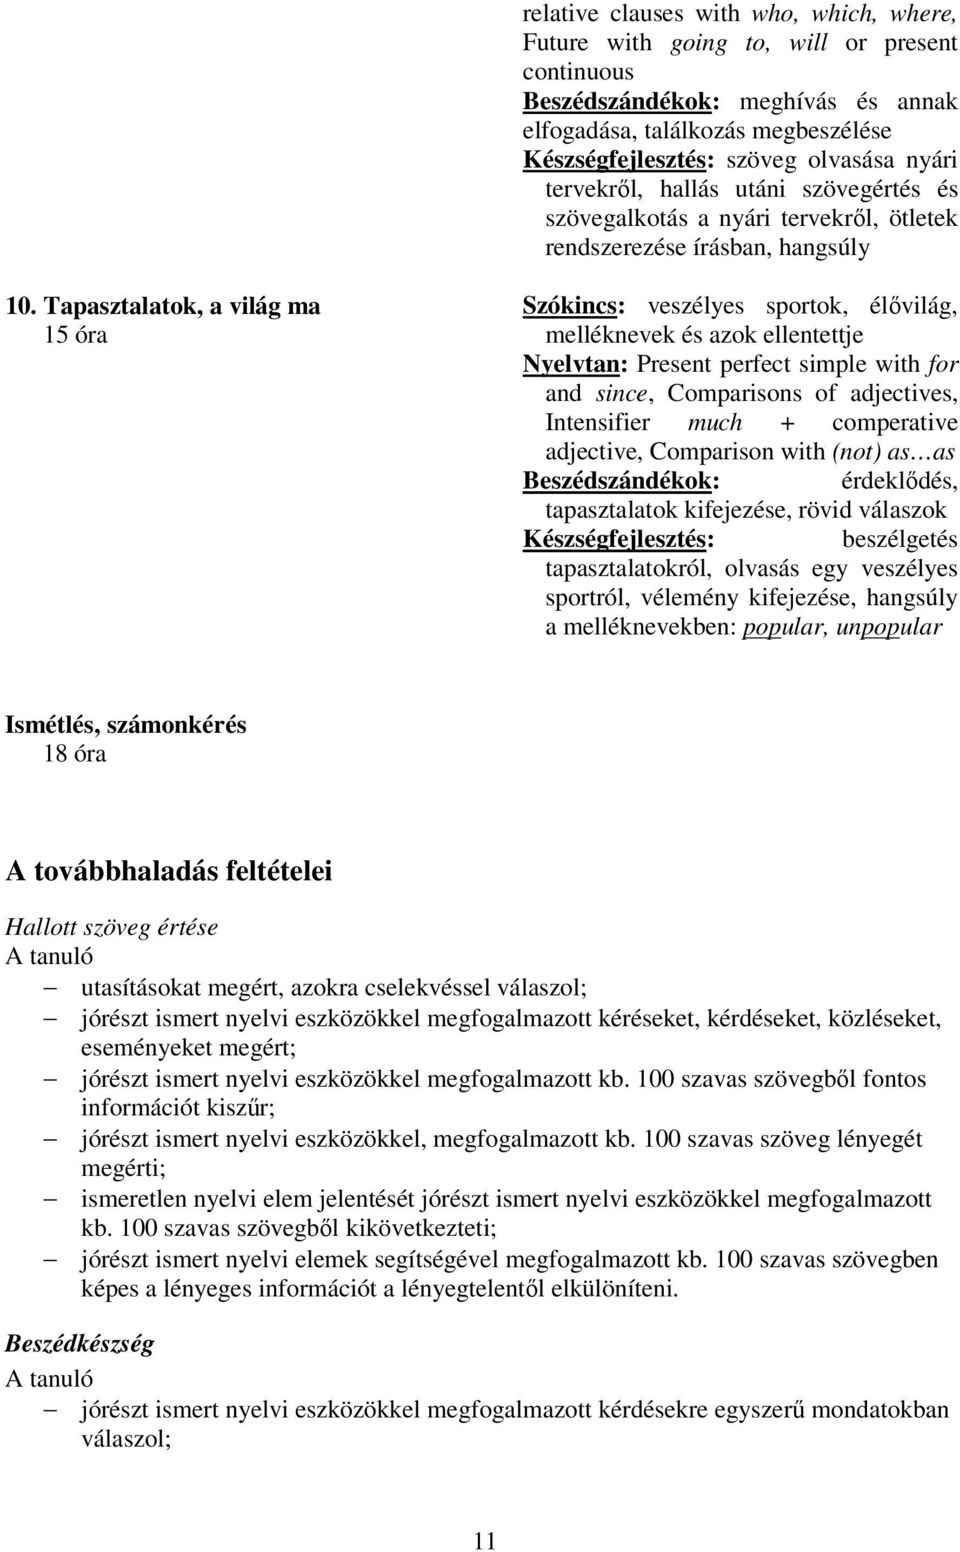 Tapasztalatok, a világ ma 15 óra Szókincs: veszélyes sportok, élővilág, melléknevek és azok ellentettje Nyelvtan: Present perfect simple with for and since, Comparisons of adjectives, Intensifier